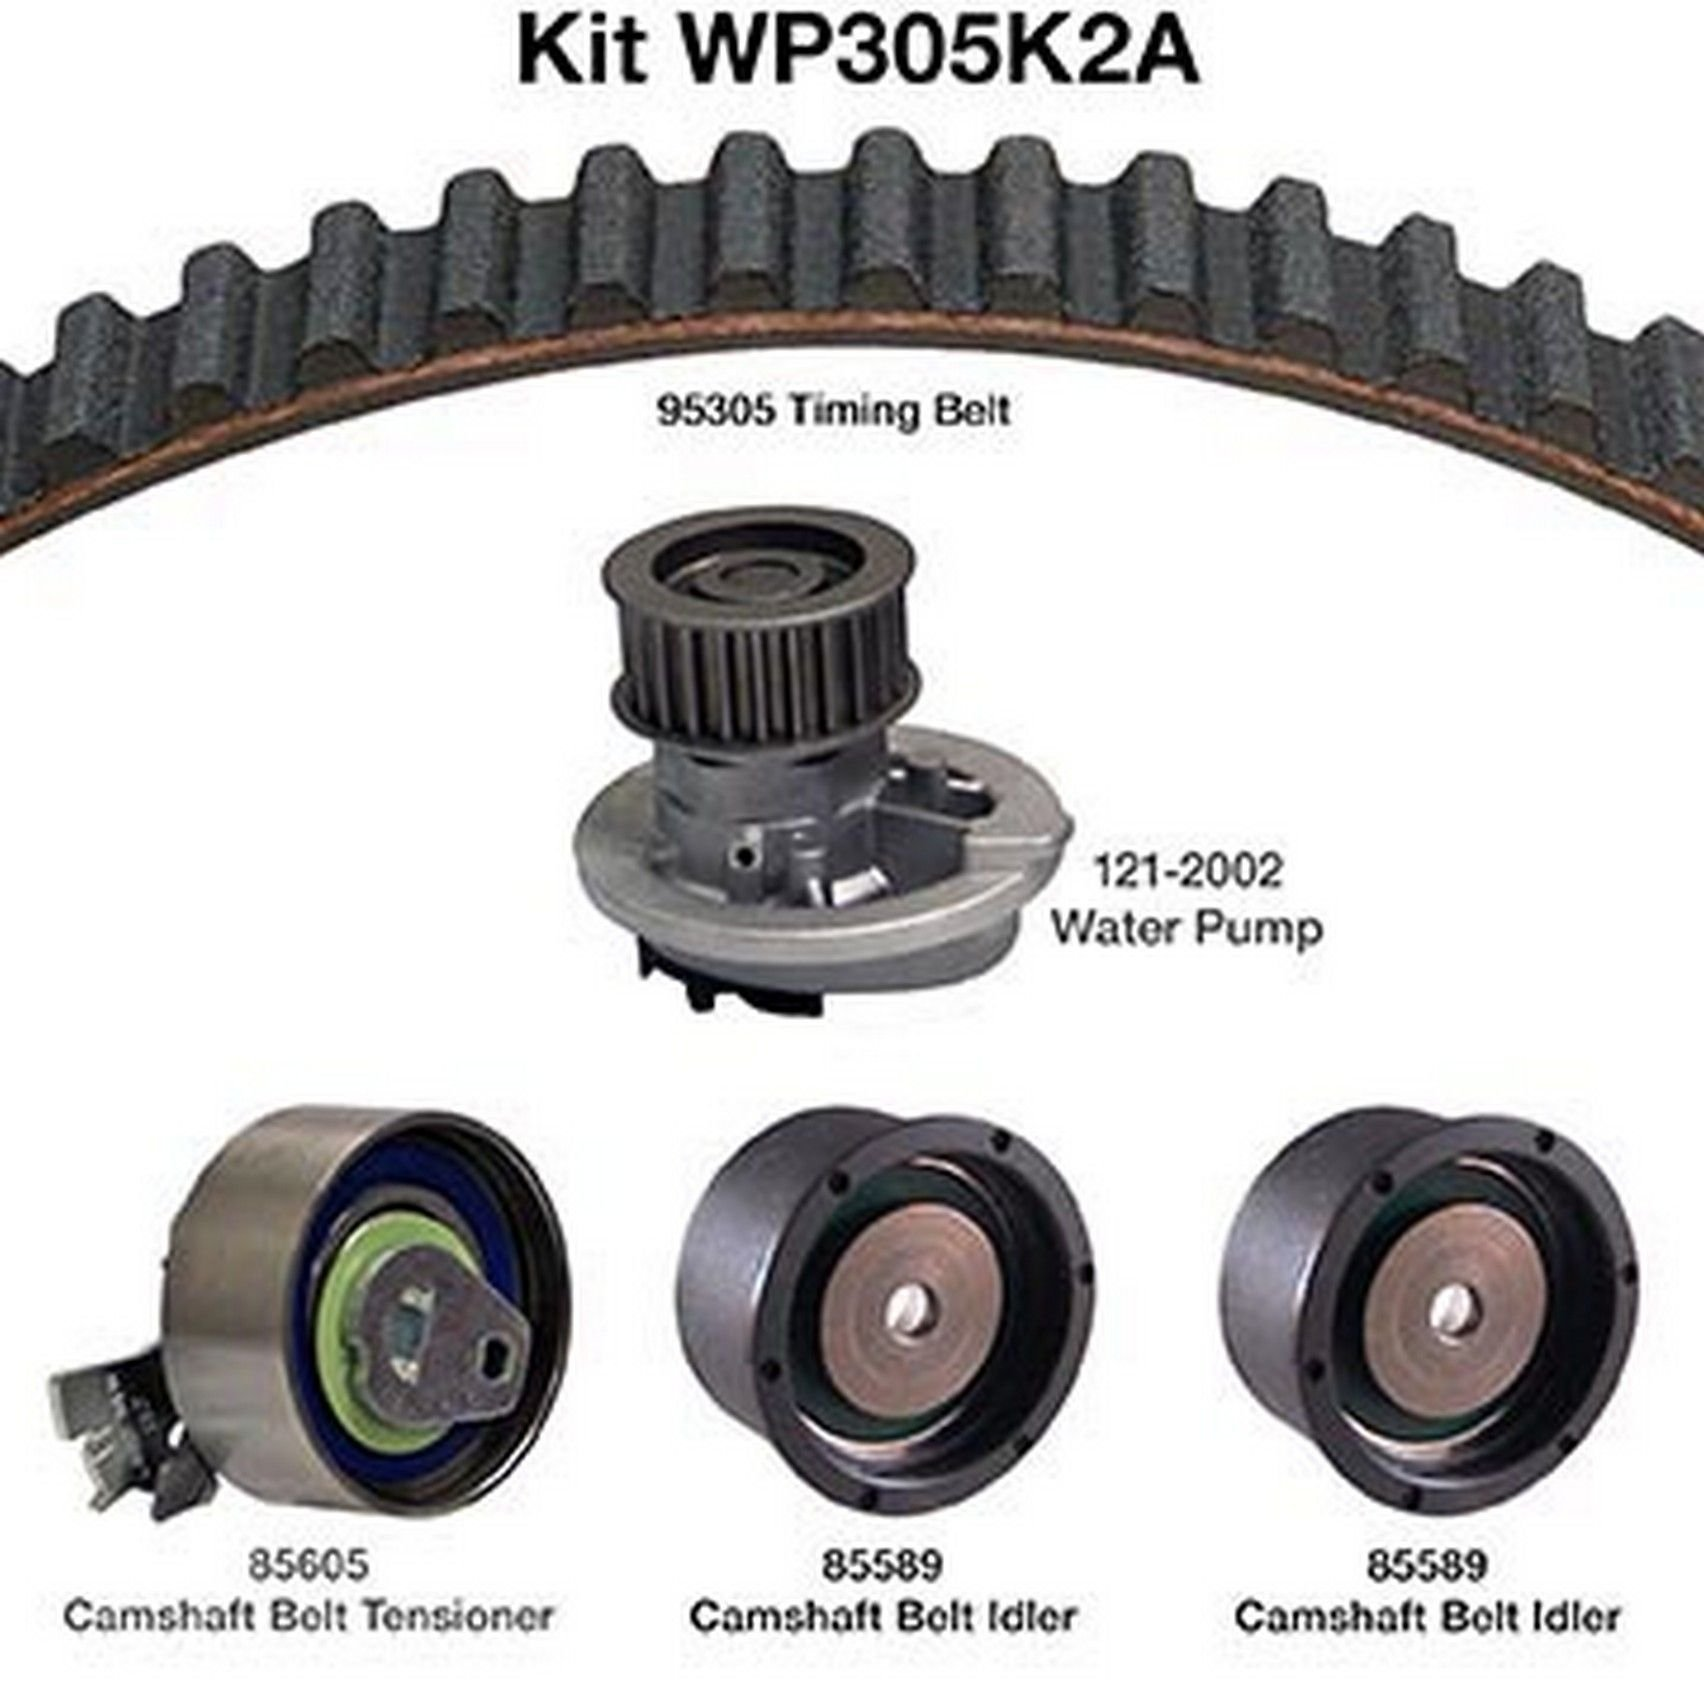 1998 isuzu amigo engine timing belt kit with water pump 4 cyl 2 2l (dayco  wp305k2a) includes: water pump, timing belt, camshaft belt tensioner,